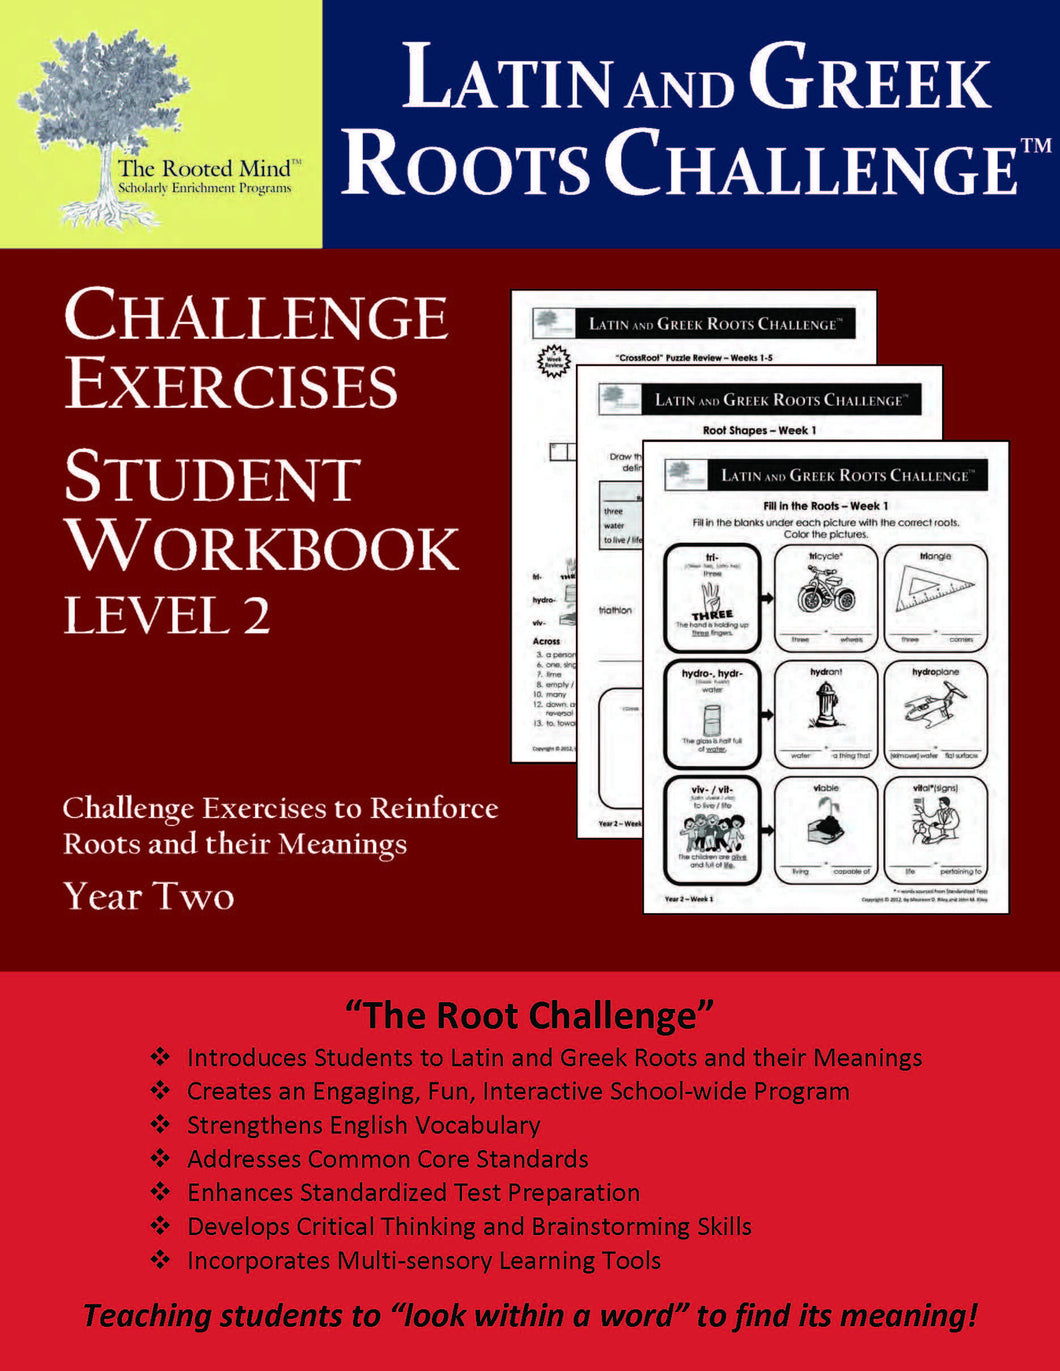 Latin and Greek Roots Challenge - Year 2 - Level 2 Student Workbook